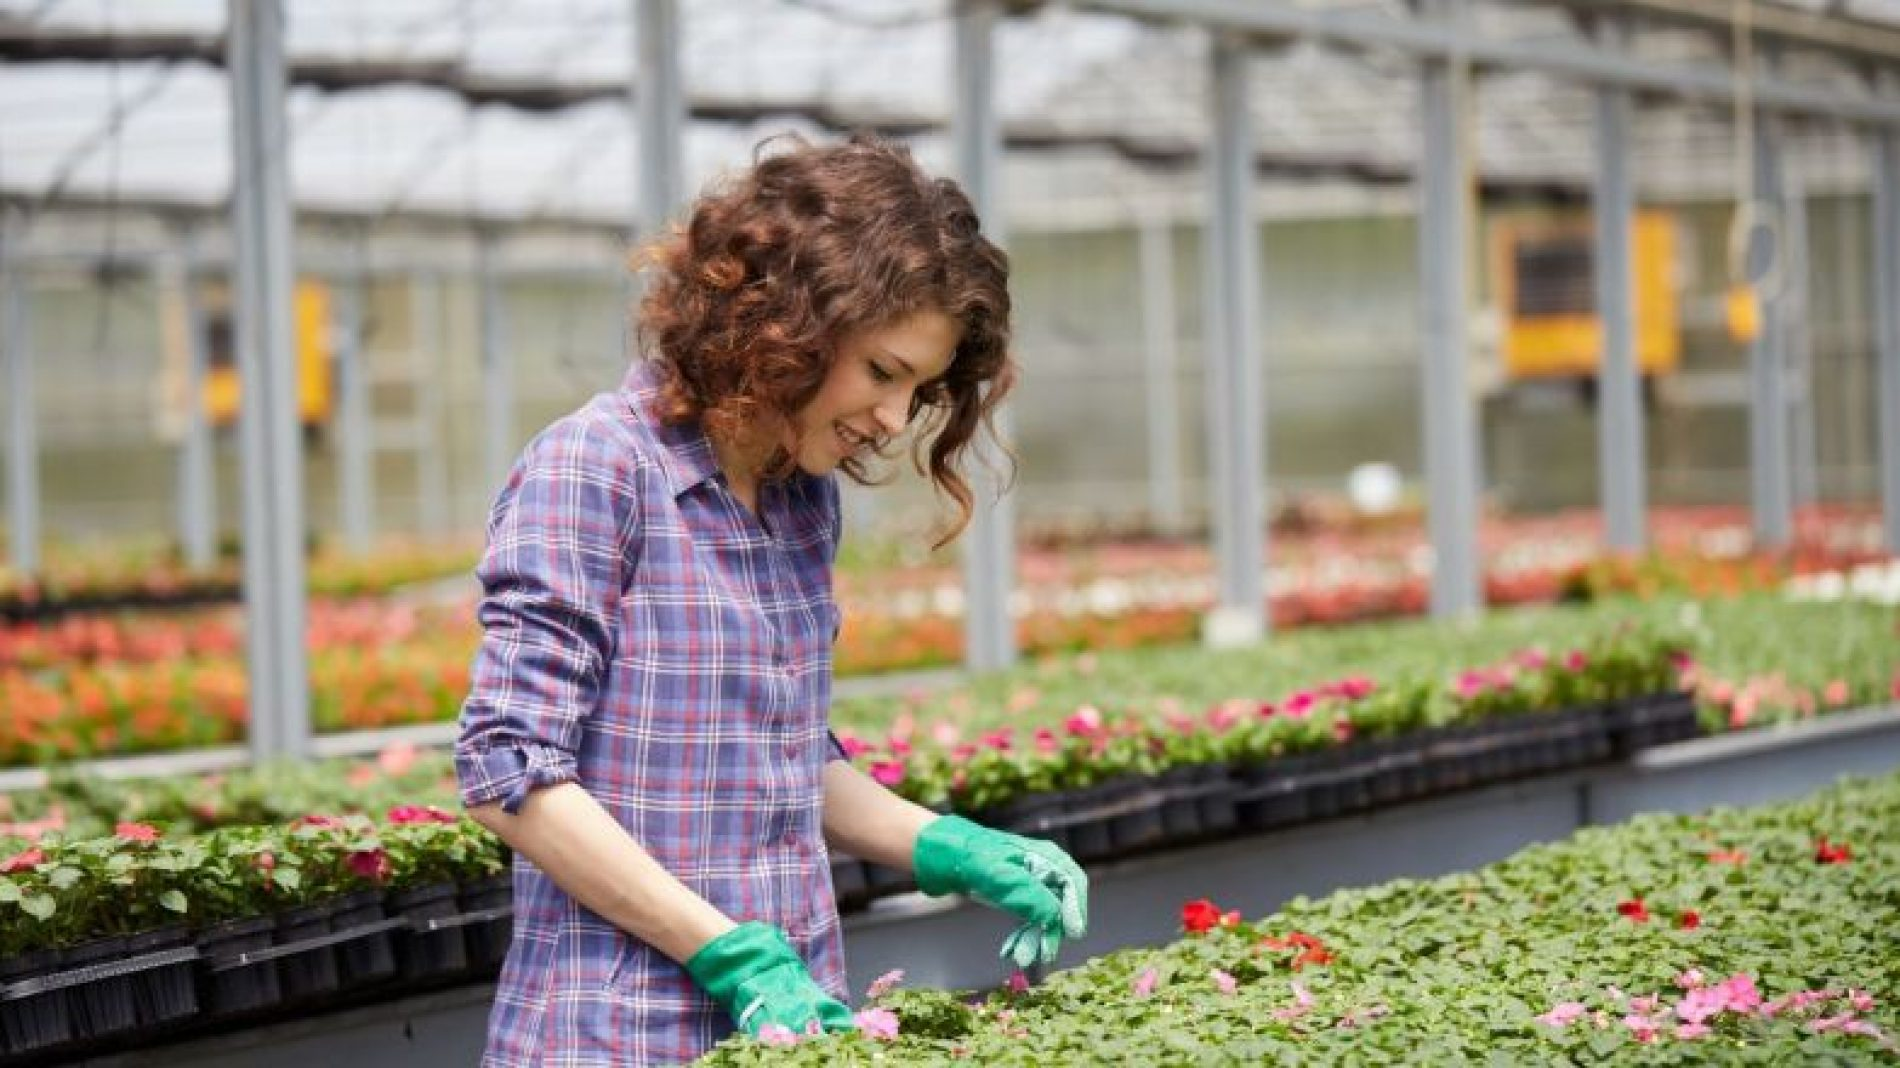 Woman working in a greenhouse